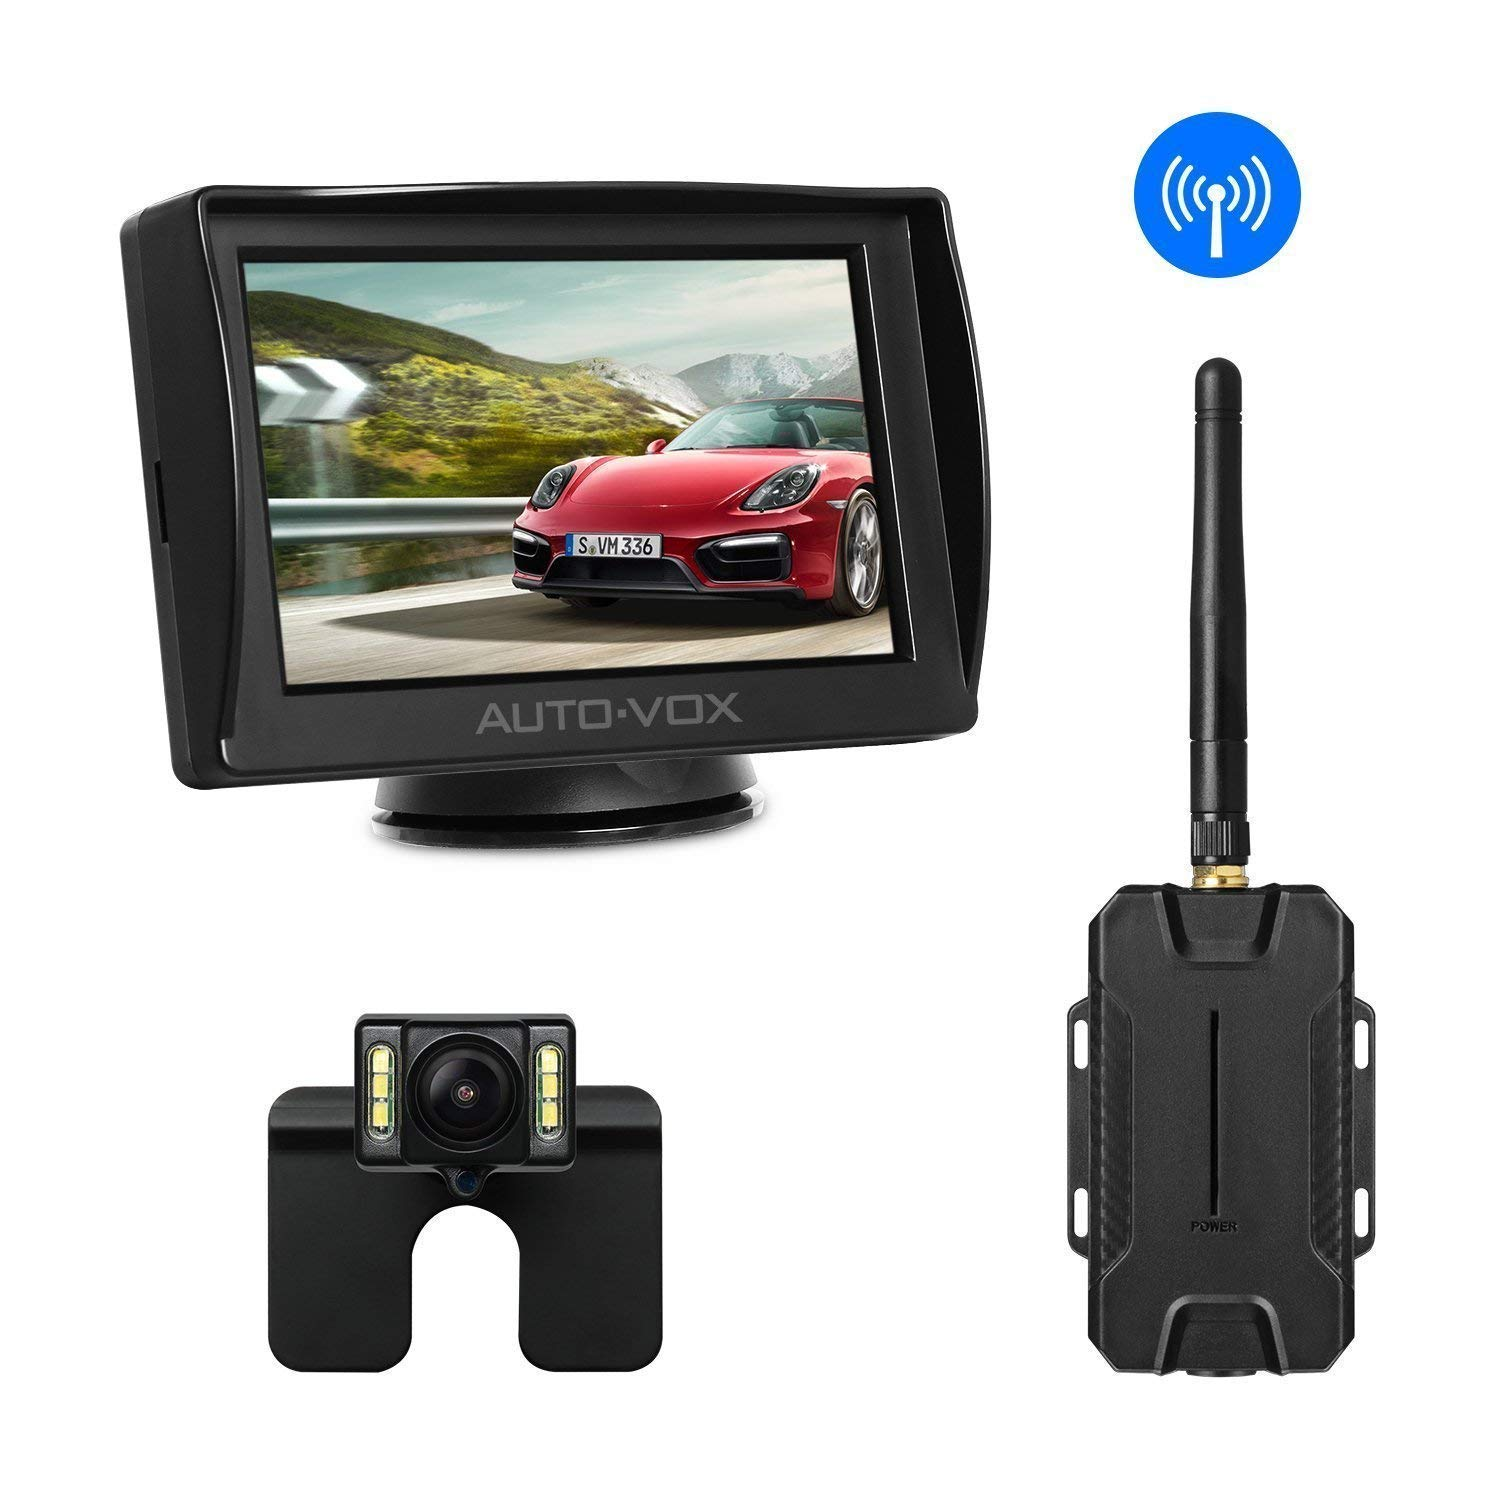 AUTO-VOX M1W Wireless Backup Camera Kit, Super Night Vision (6 LEDs) HD Rear View Camera for Truck, Sedan by AUTO-VOX